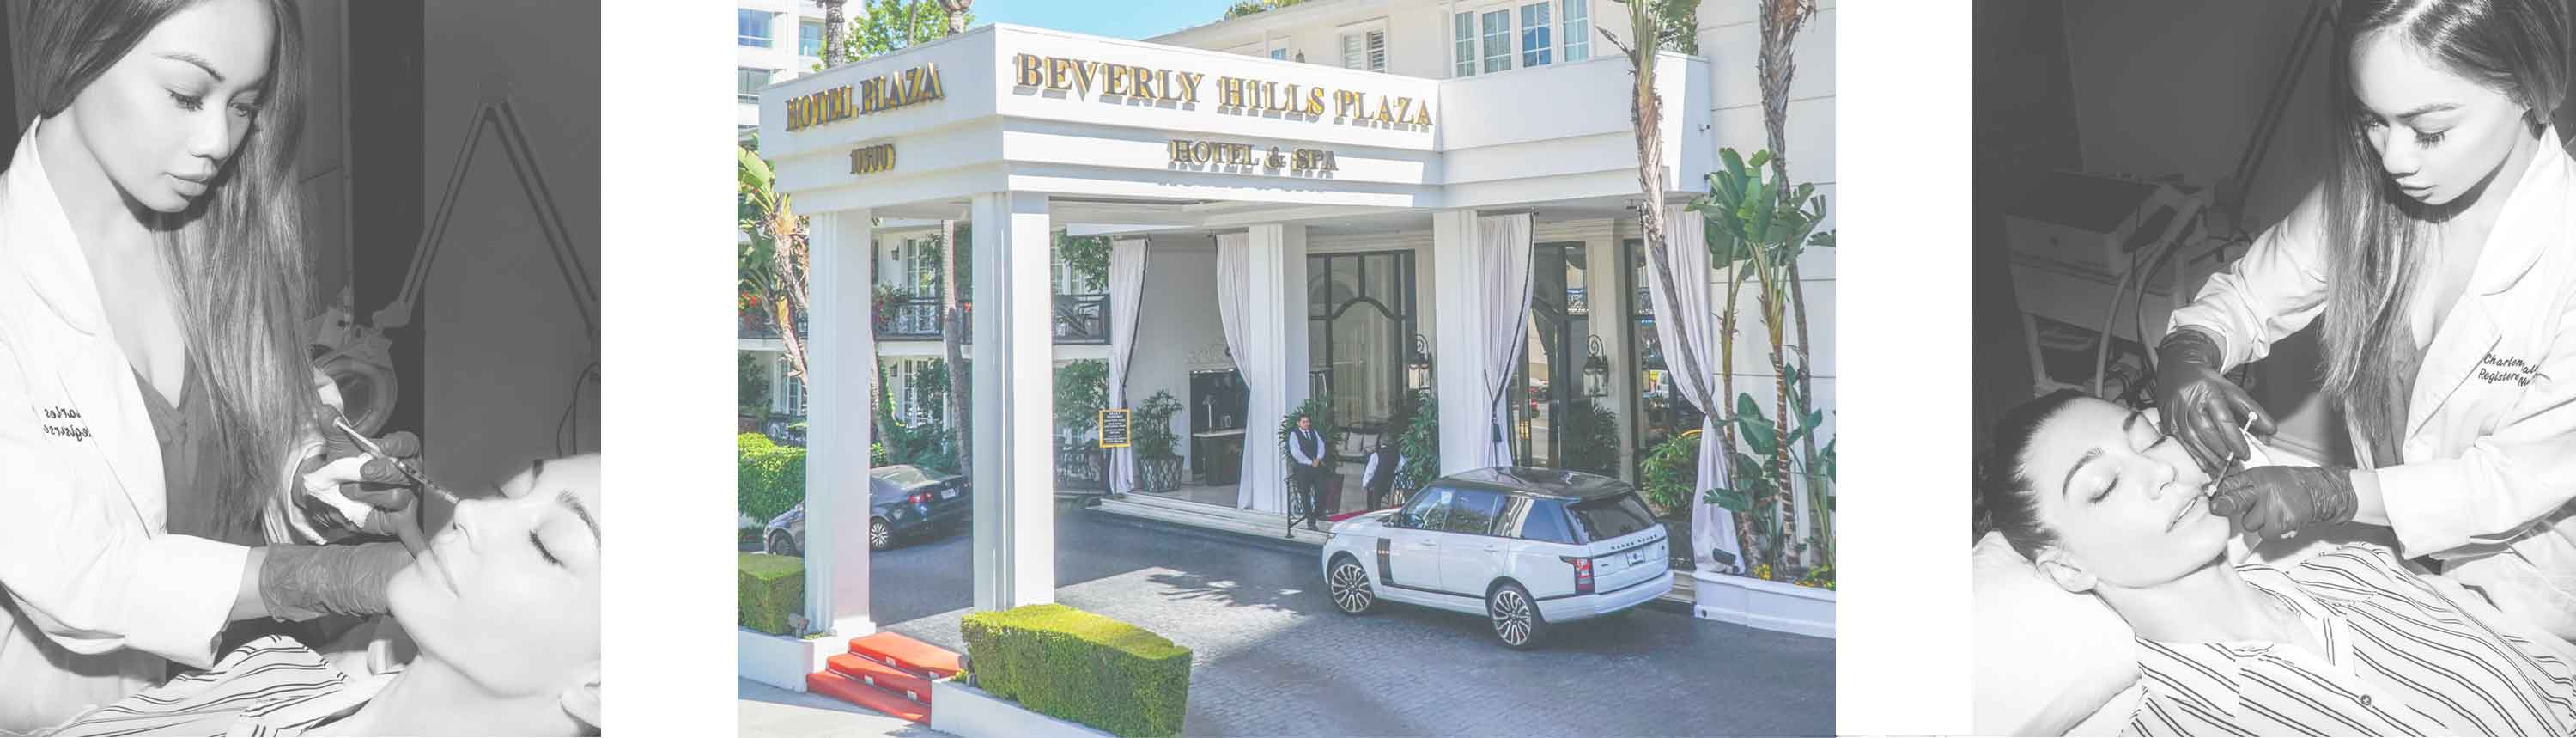 Beverly Hills Plaza Hotel Medi Spa Injectables